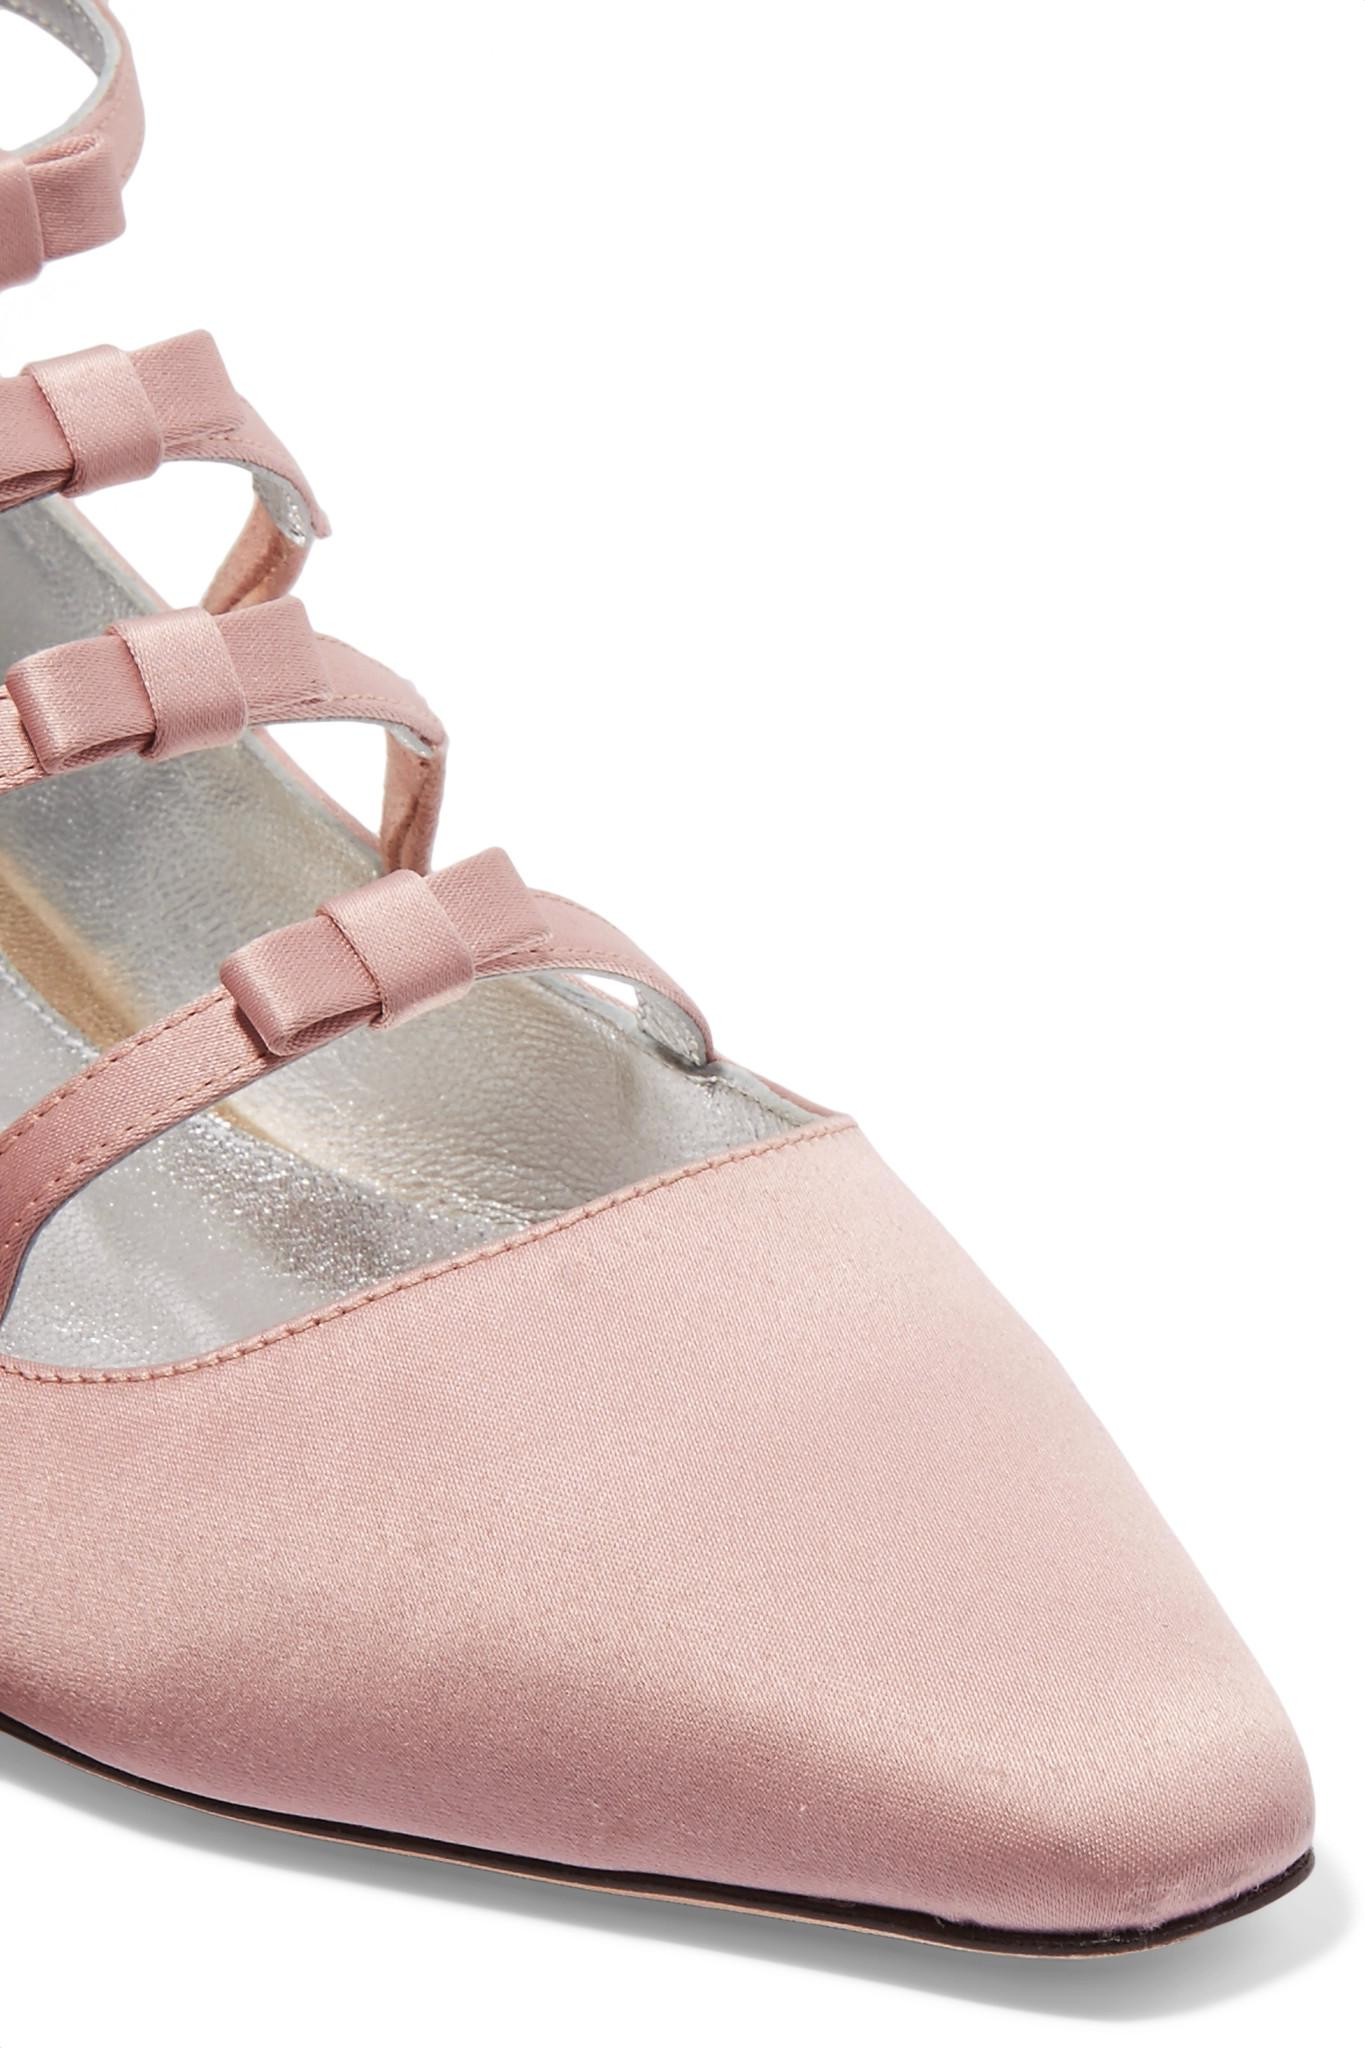 0b4ef82aea0c Lyst - ALEXACHUNG Bow-embellished Satin Point-toe Flats in Pink